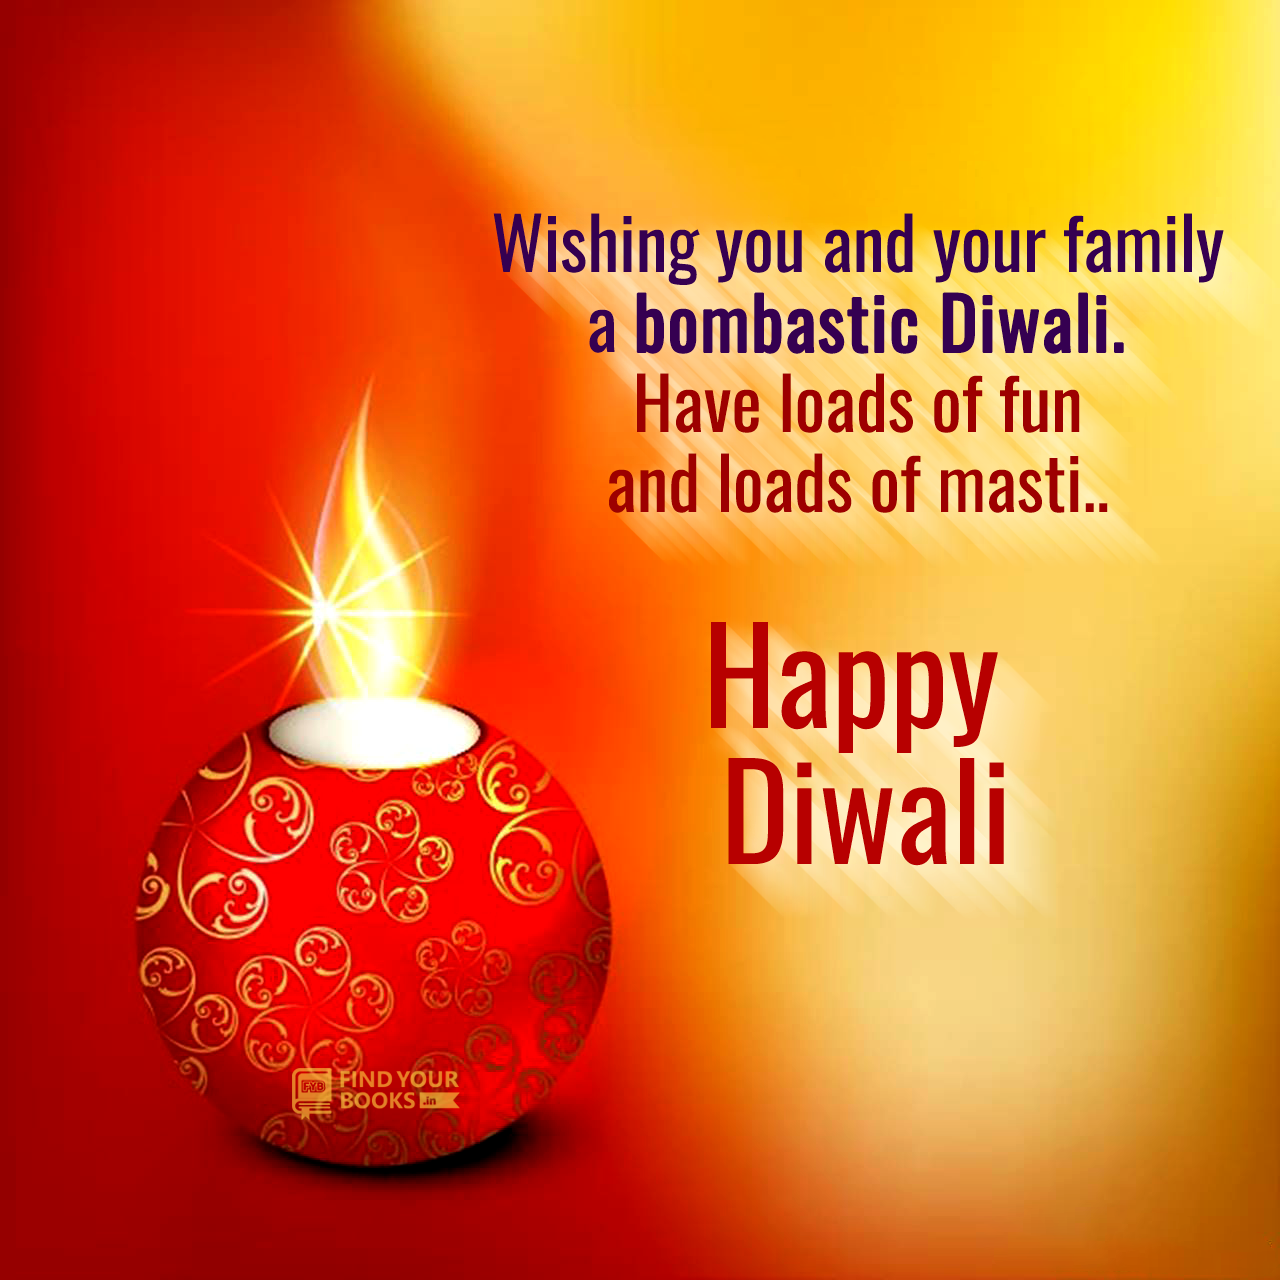 Beautiful Diwali Greeting cards & wishes Design and Happy Diwali Wishes